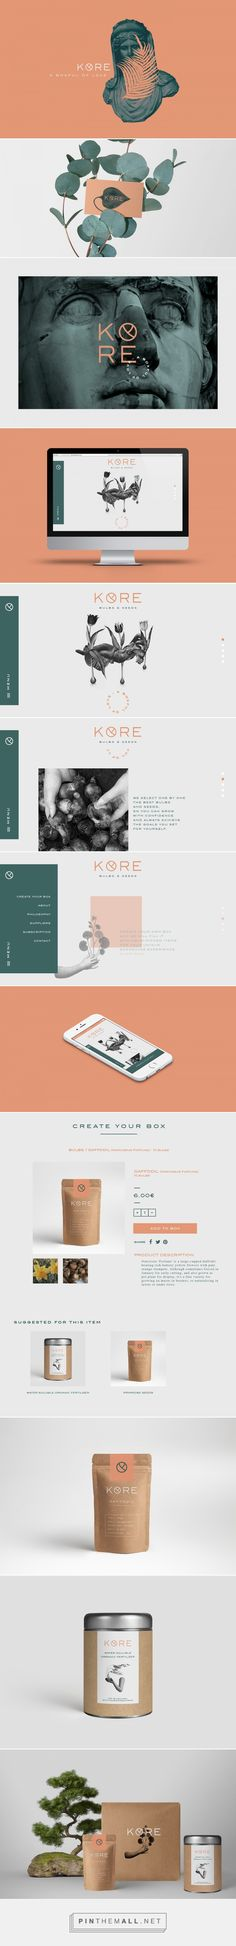 KORE Bulbs and Seeds Online Boutique Branding by Francesco Santese | Fivestar Branding Agency – Design and Branding Agency & Curated Inspiration Gallery